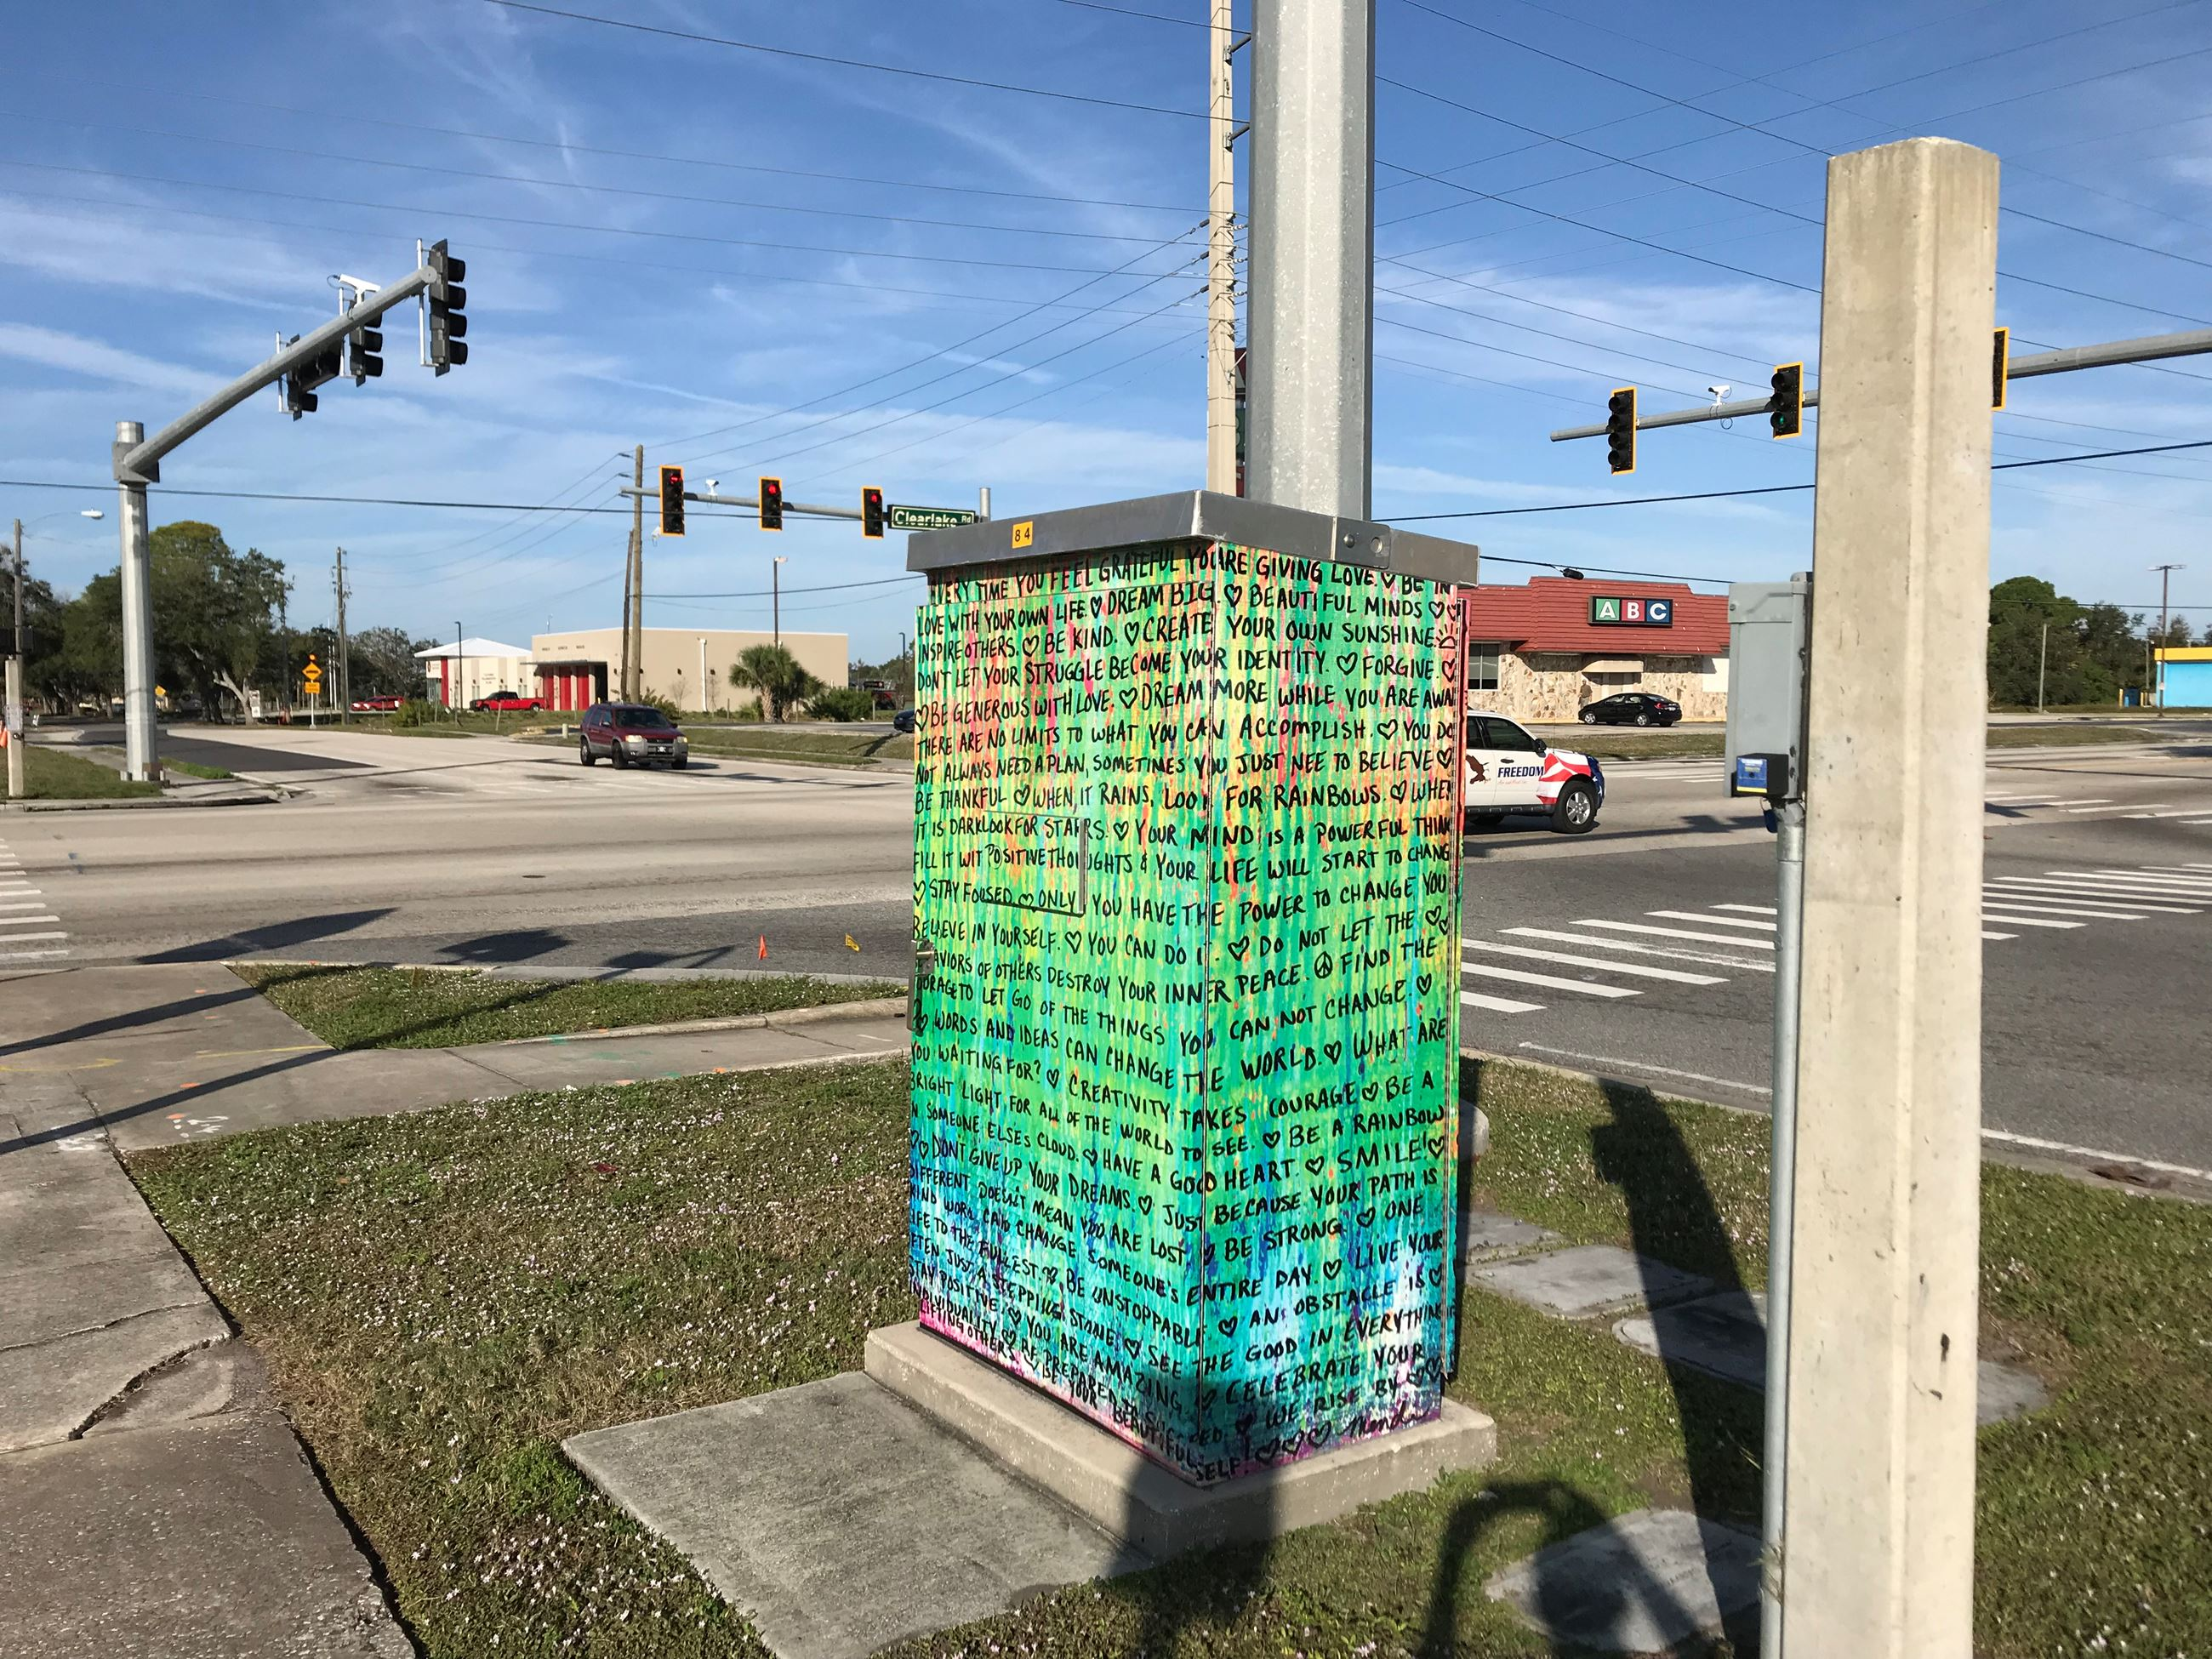 Photo of Positive Words Artwork on Traffic Box at Dixon Blvd. and Clearlake Rd.